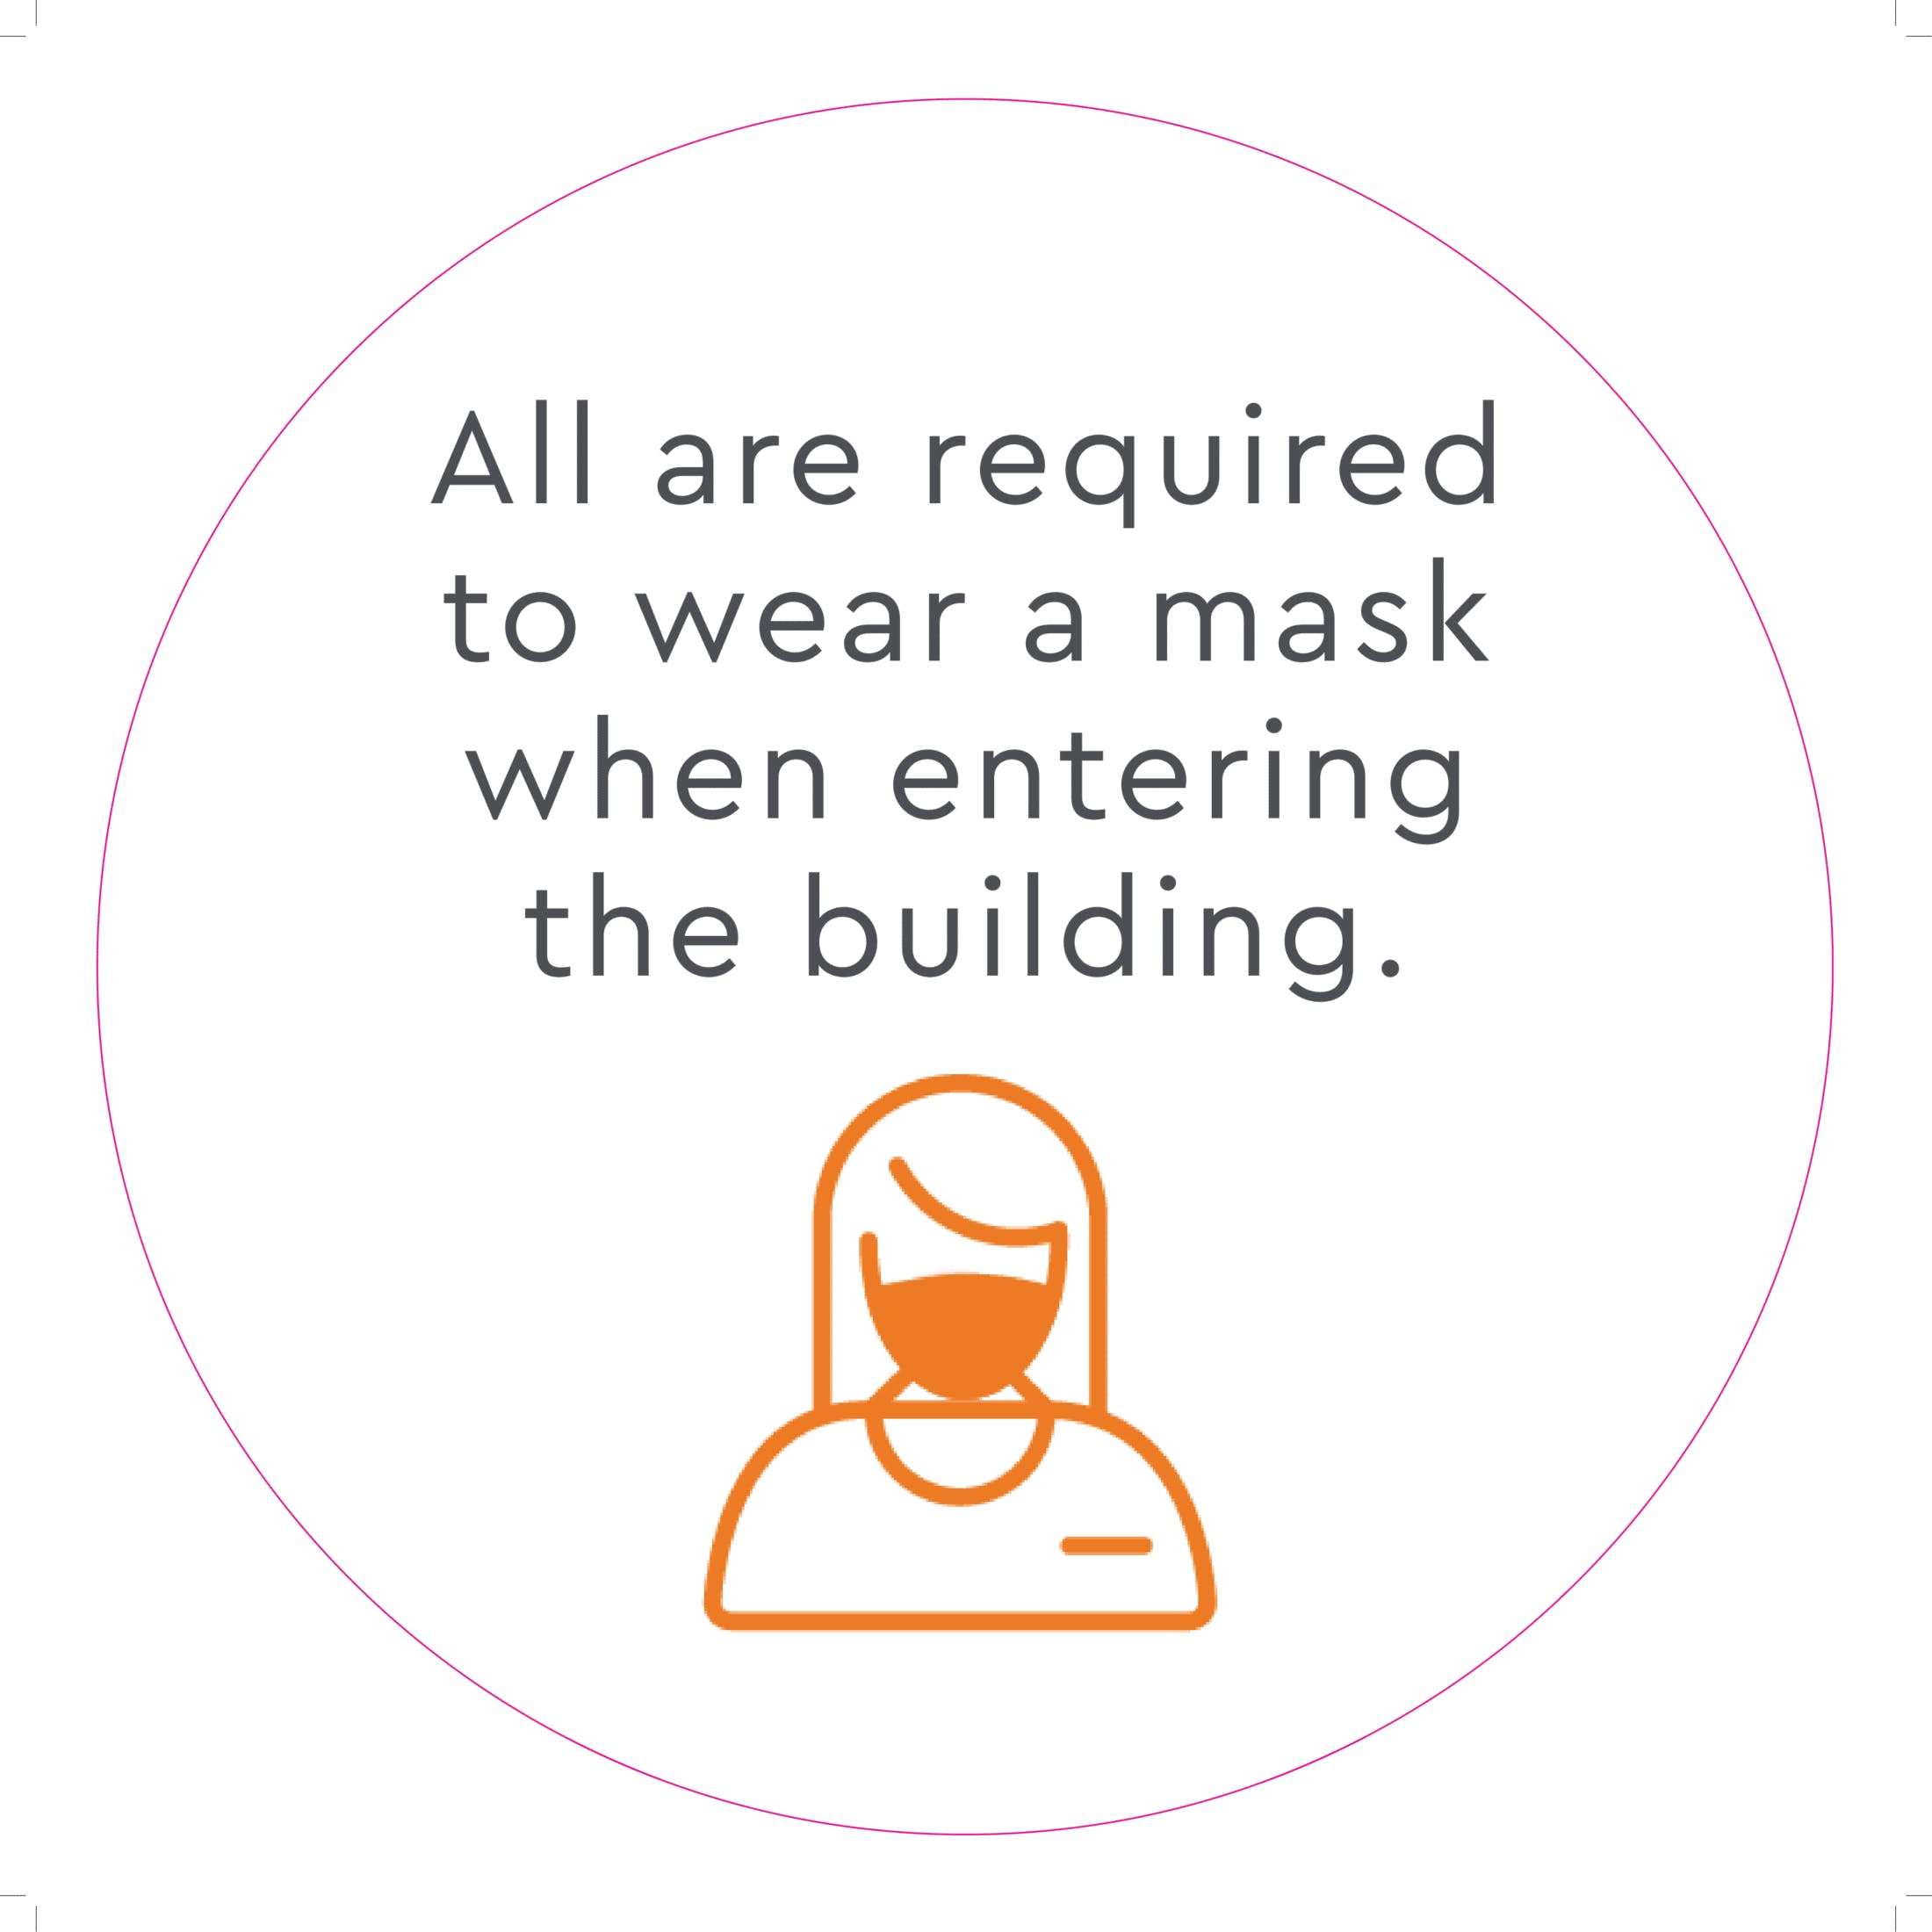 All are required to wear a mask when entering the building.